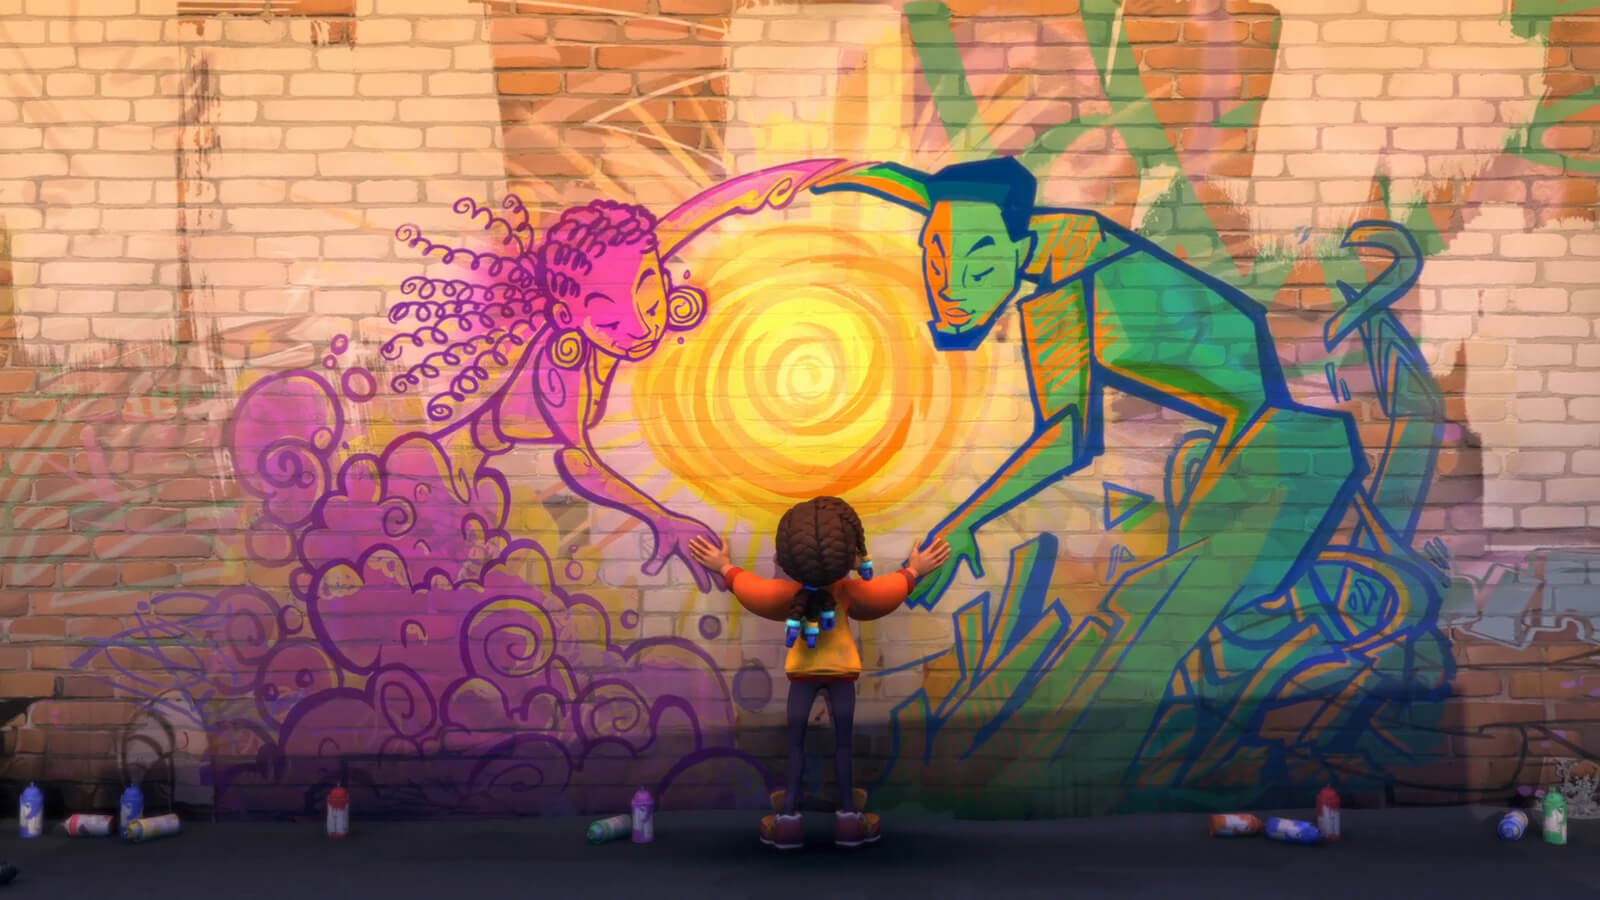 A girl facing a brick wall spray-painted with two figures, one pink, one green, holding hands around a bright sun